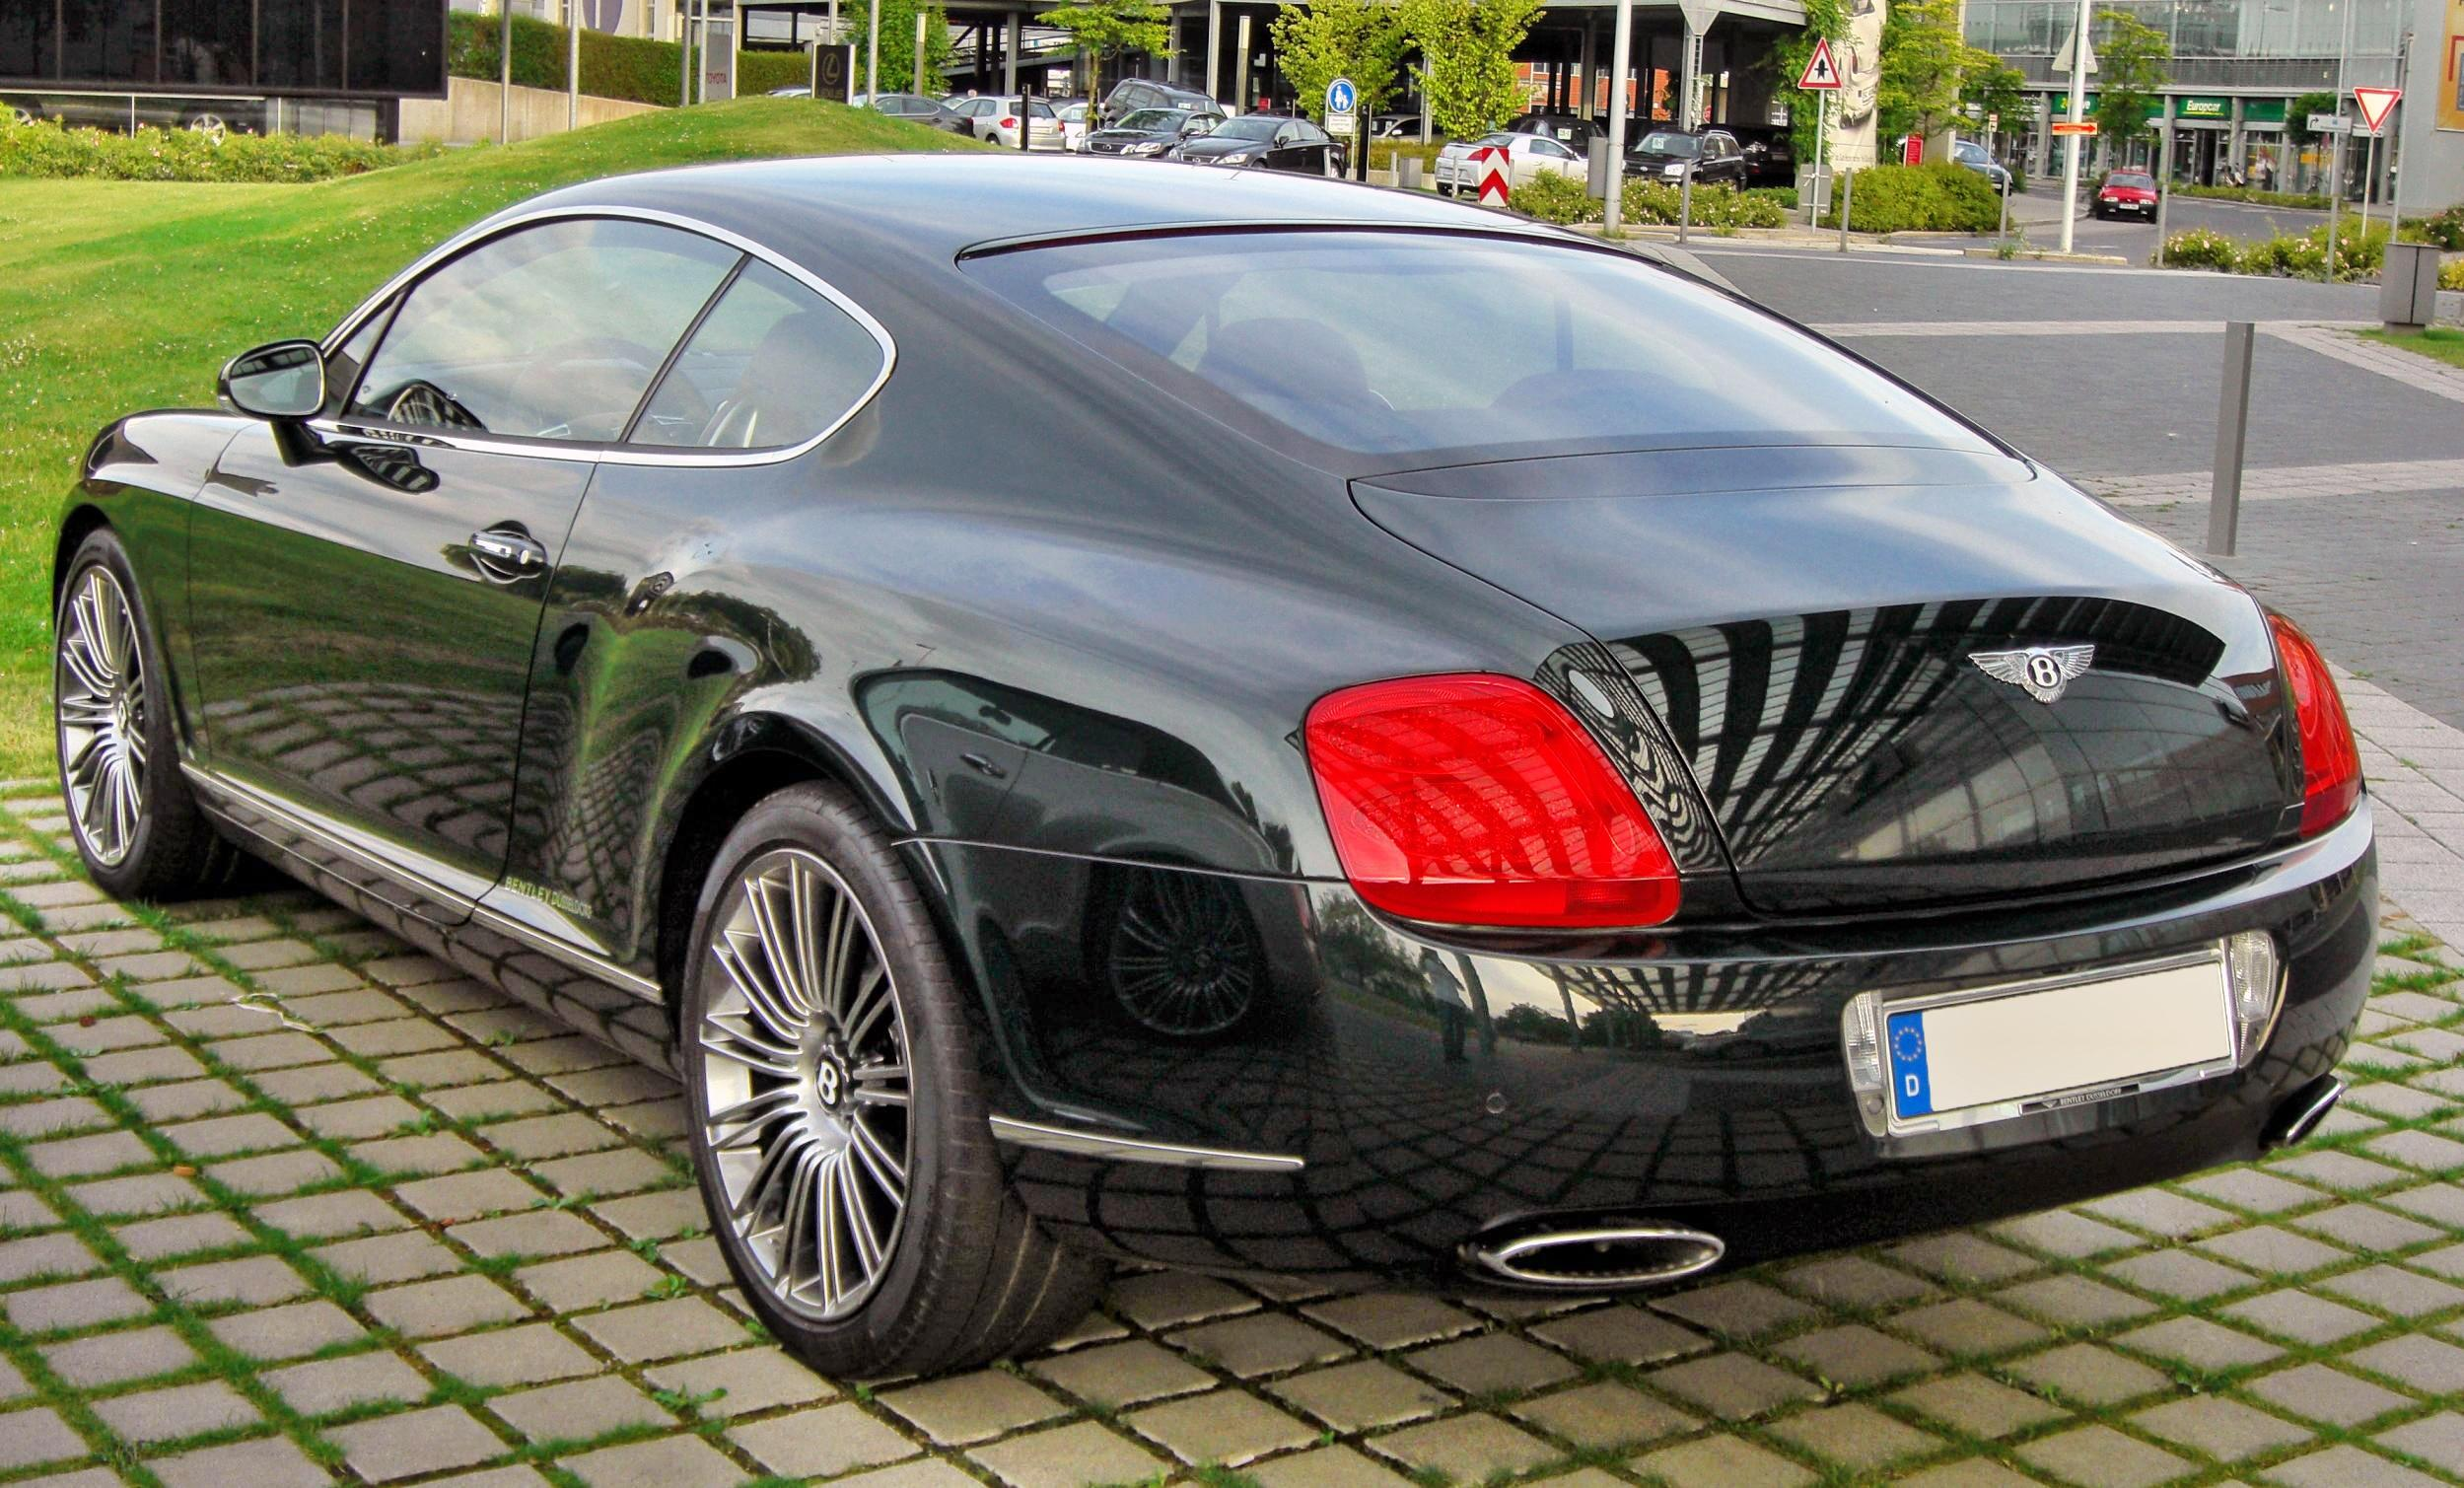 2009 Bentley Continental Gt Speed #18